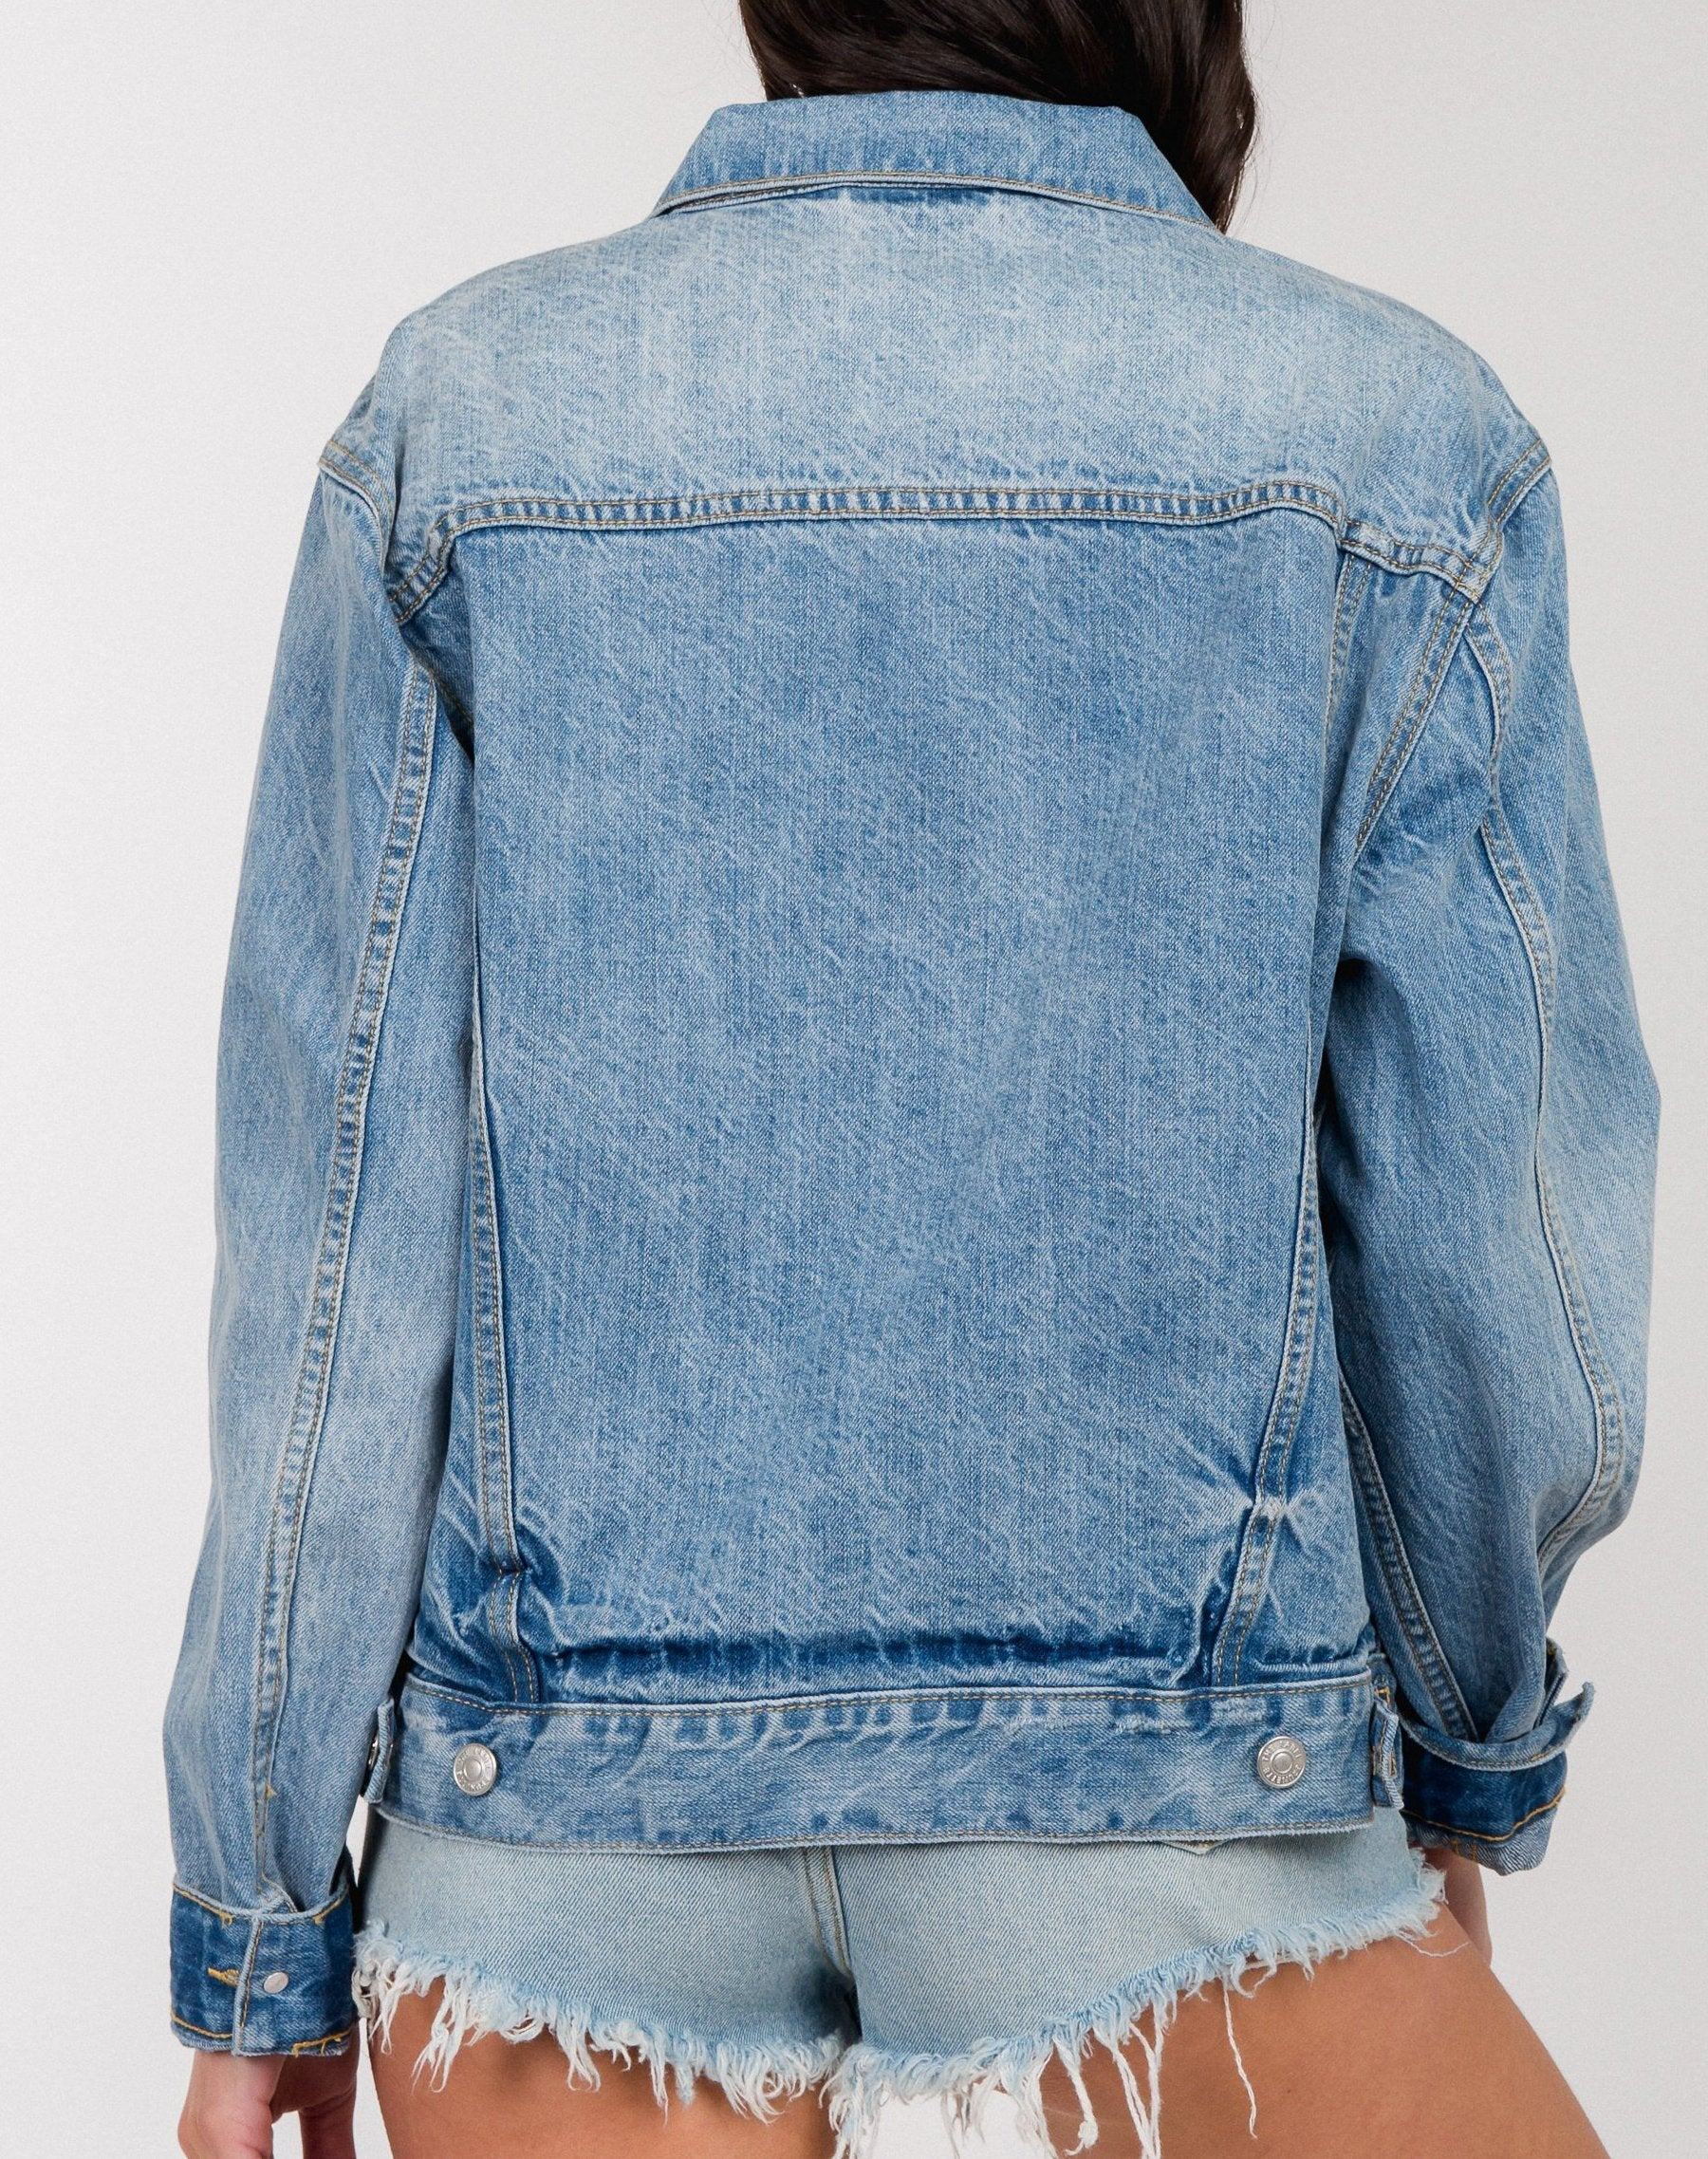 Photo of the back of the Lindsay denim jacket in light wash by Brunette the Label.